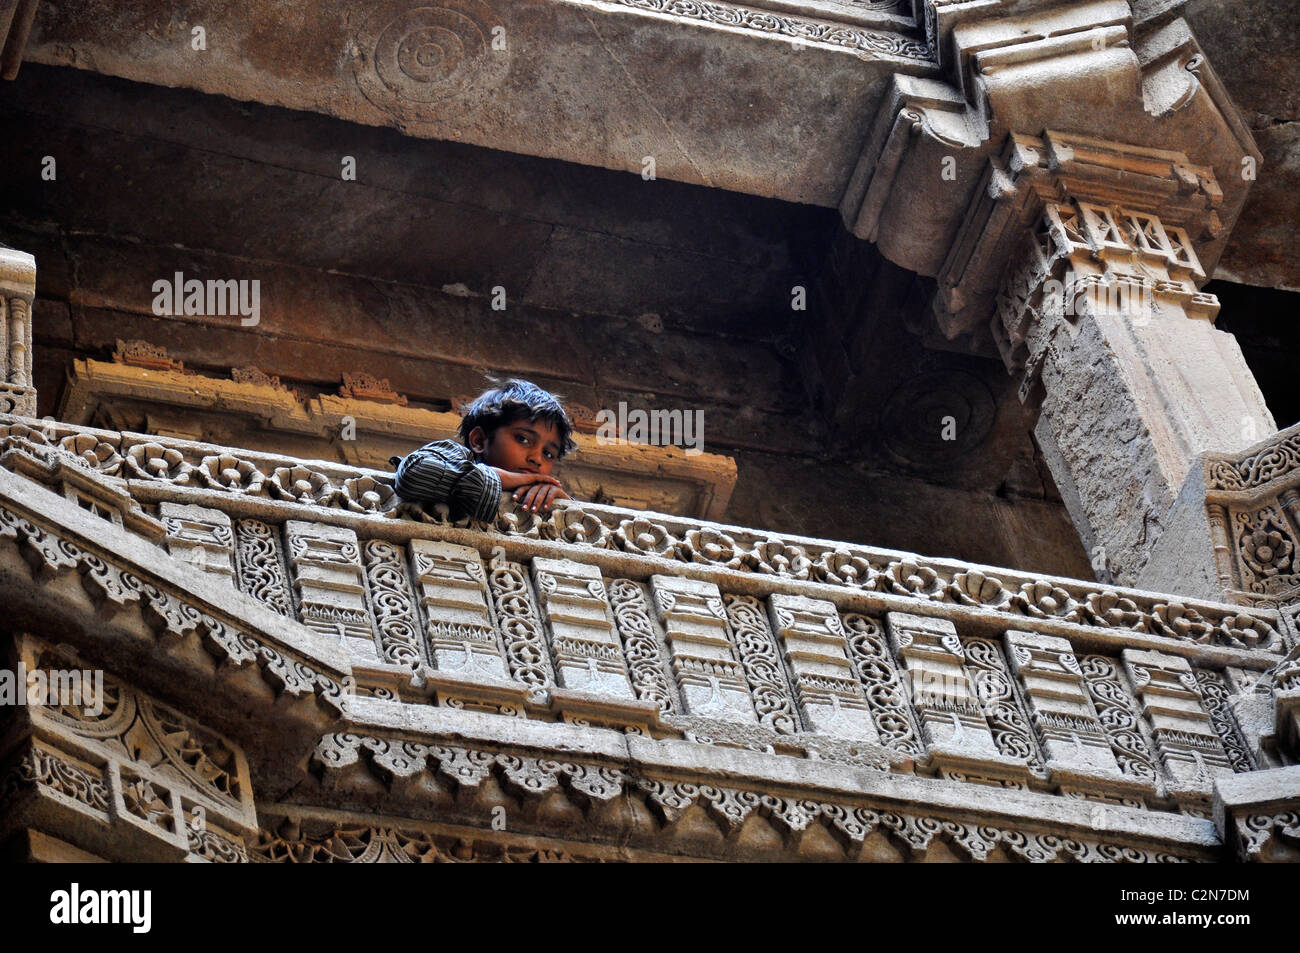 A boy looking from the Stepwell ( Adalaj vav) in Gujarath, India - Stock Image